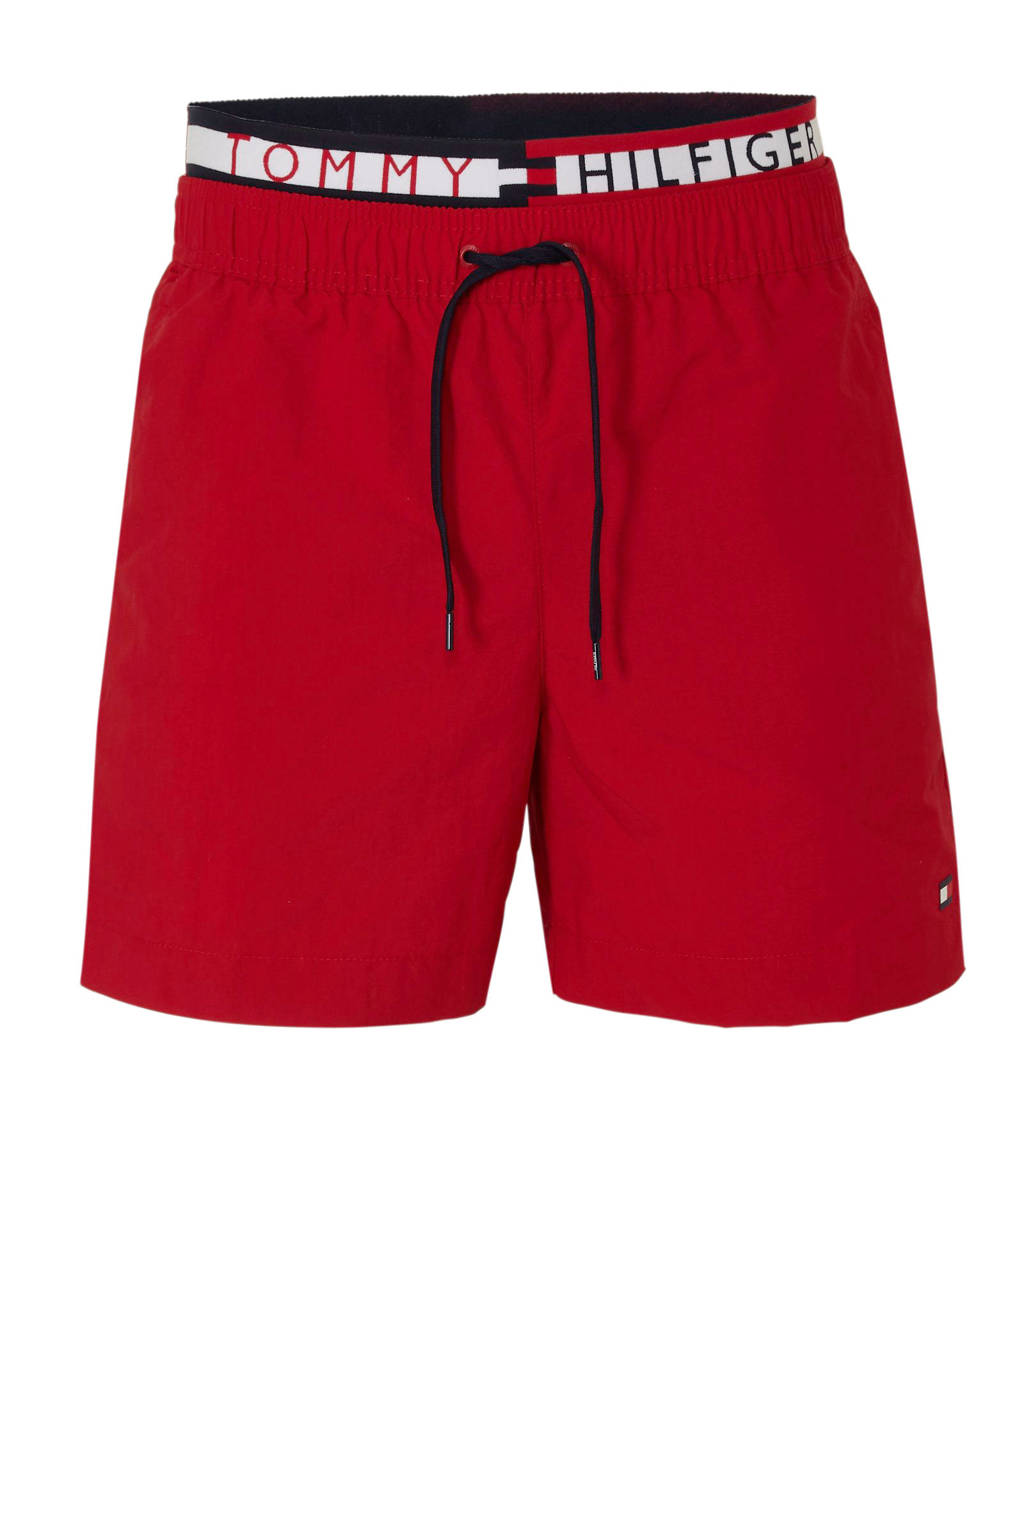 Tommy Hilfiger zwemshort met dubbele tailleband rood, Rood